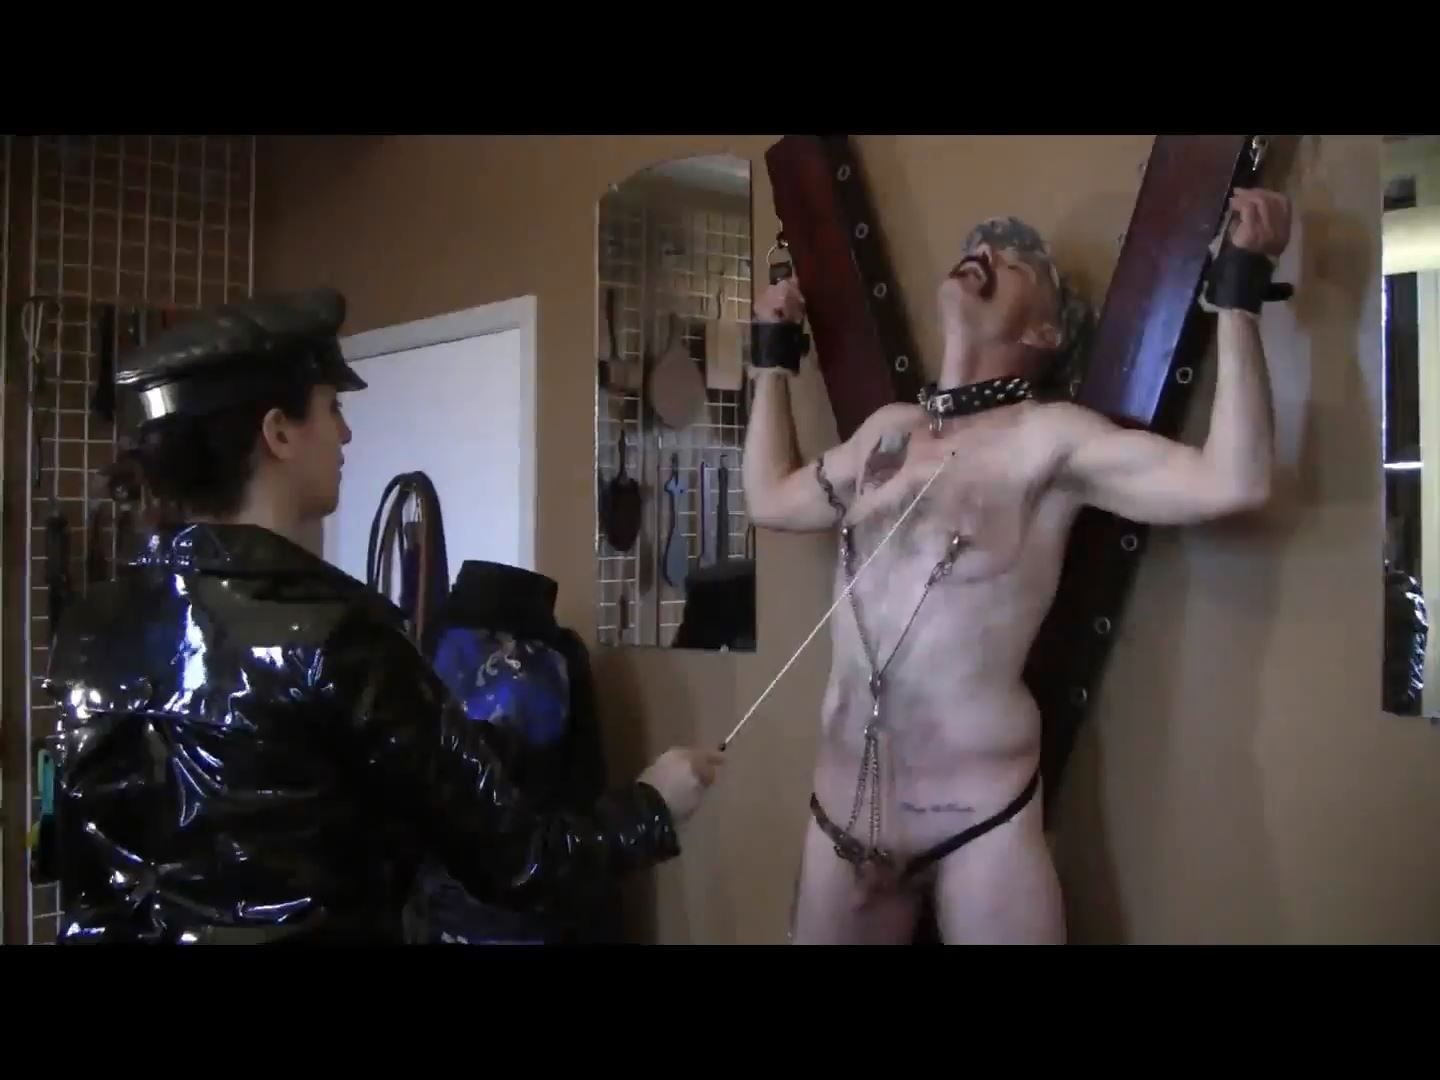 Mistress Xena In Scene: The Recruit Part 4 - BIZARRE CINEMA - FULL HD/1080p/MP4